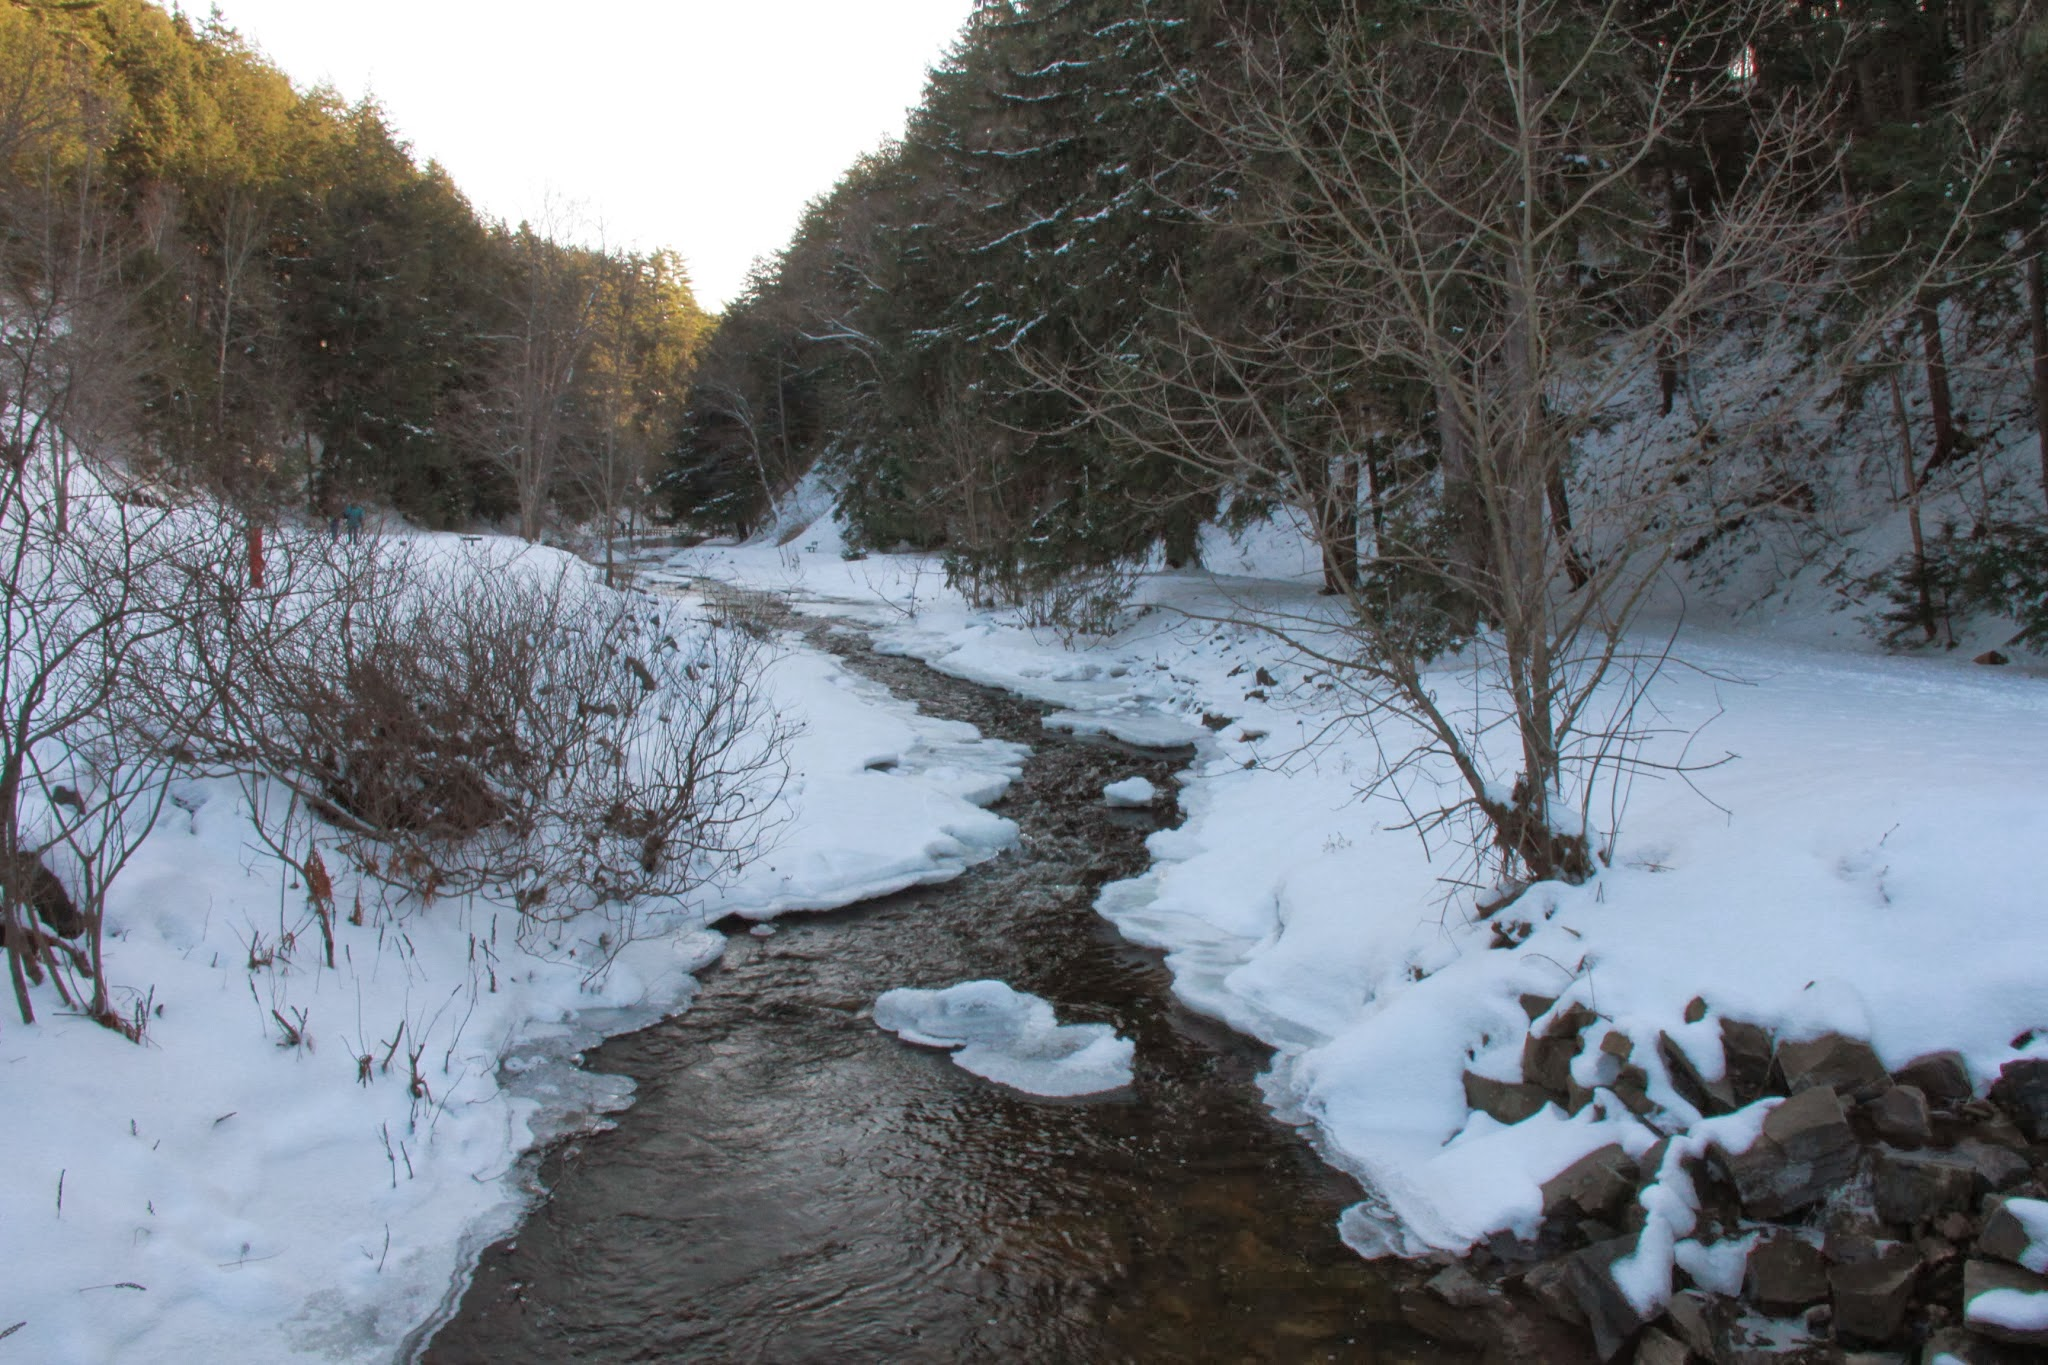 Wandering Winter Stream Surrounded by Trees | PHOTOGRAPHY